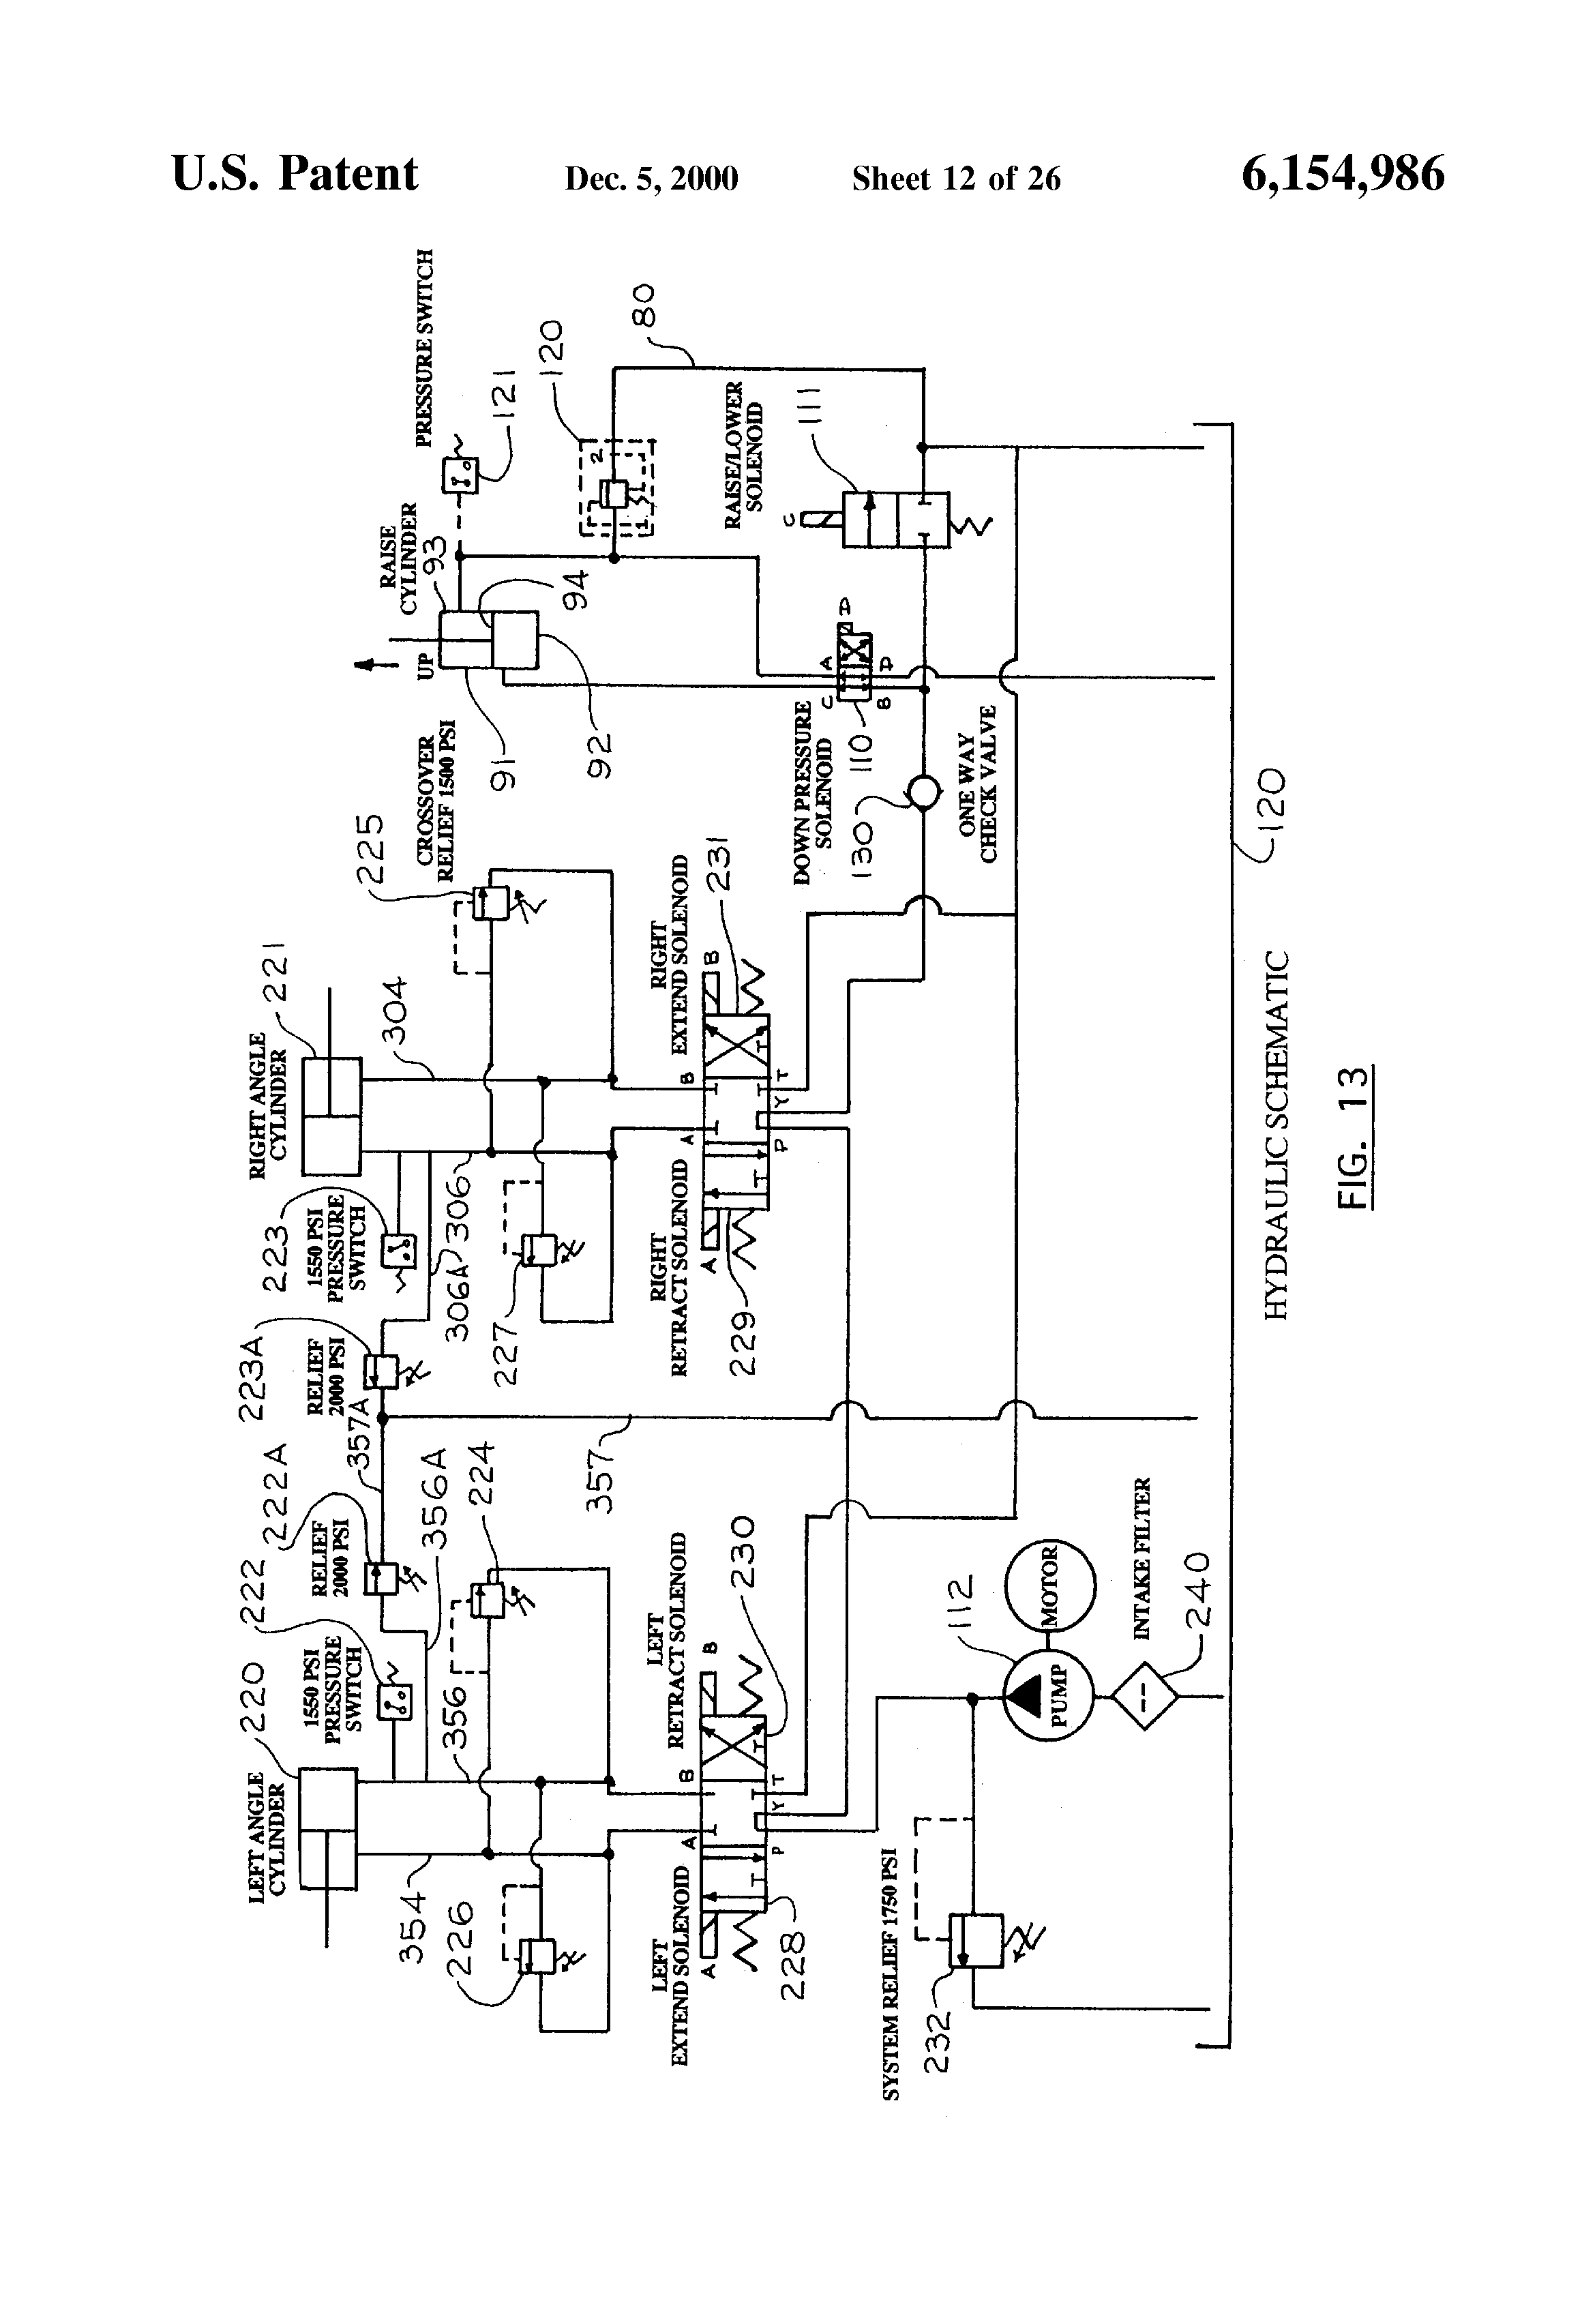 barnes snow plow wiring diagram index listing of wiring diagramsbarne snow plow wiring diagram kindred sink mounting clips acesmall resolution of monarch hydraulic pump wiring